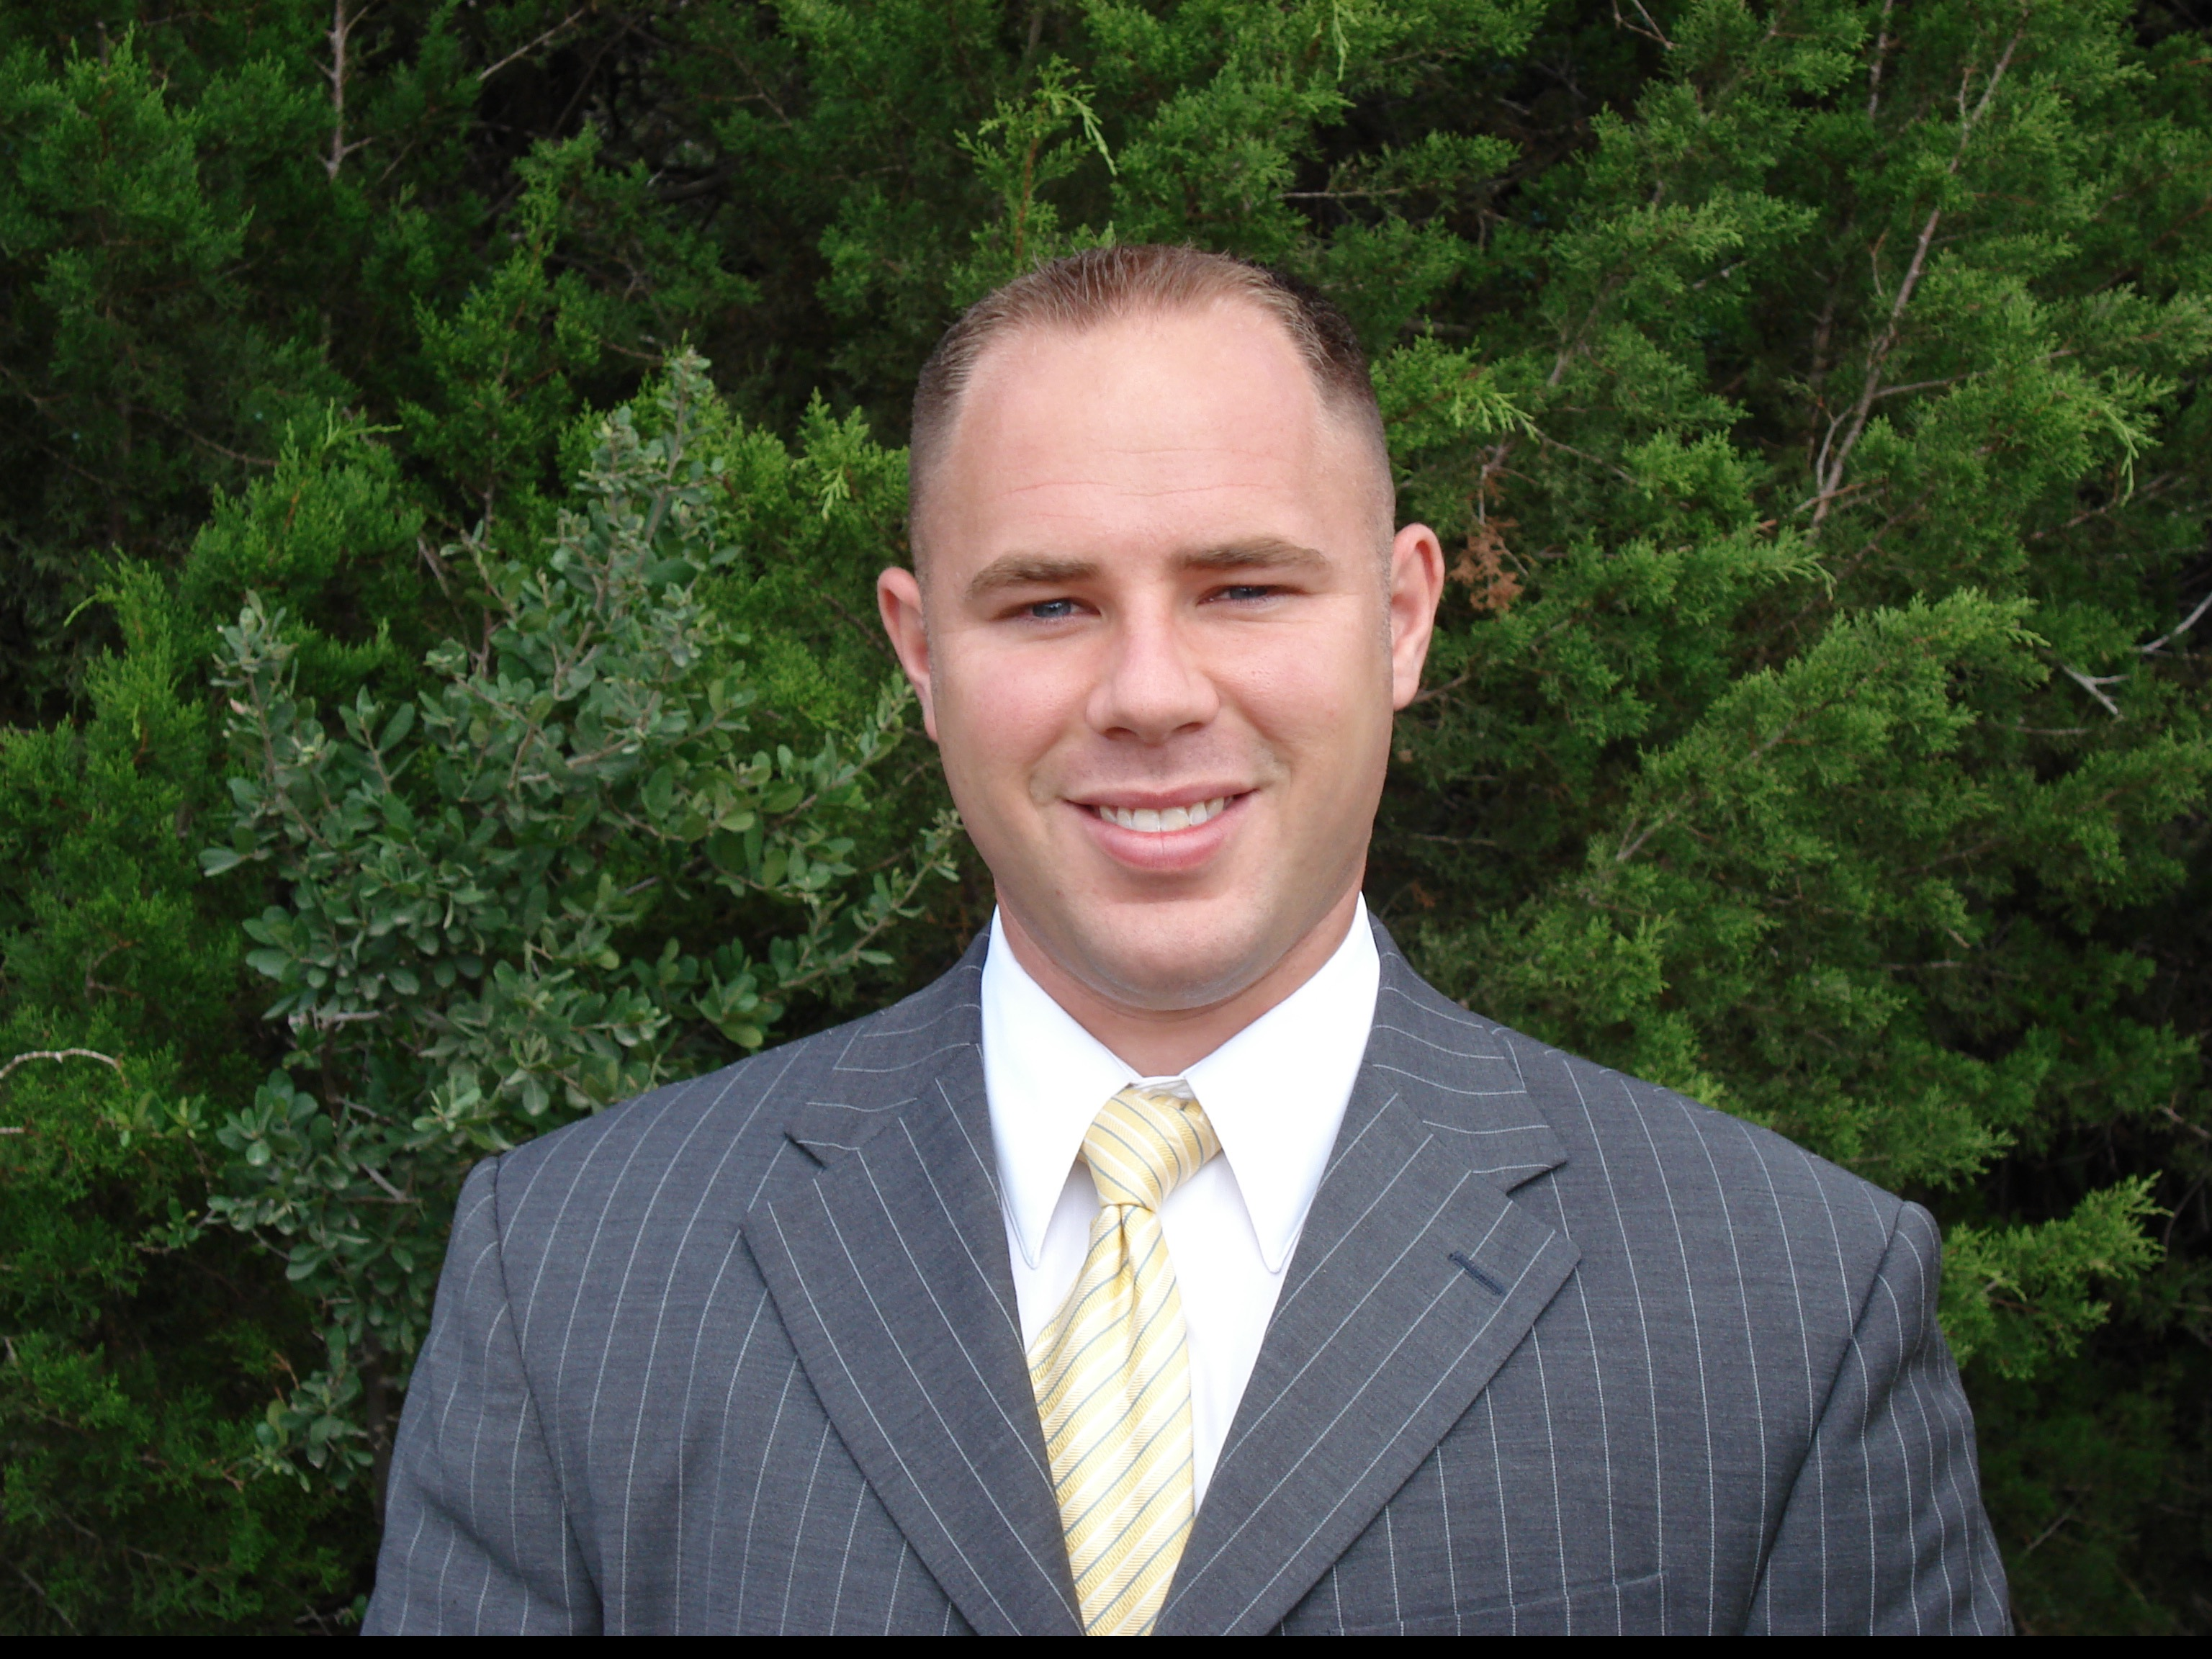 Christopher Moore, financial advisor Chappell Hill TX